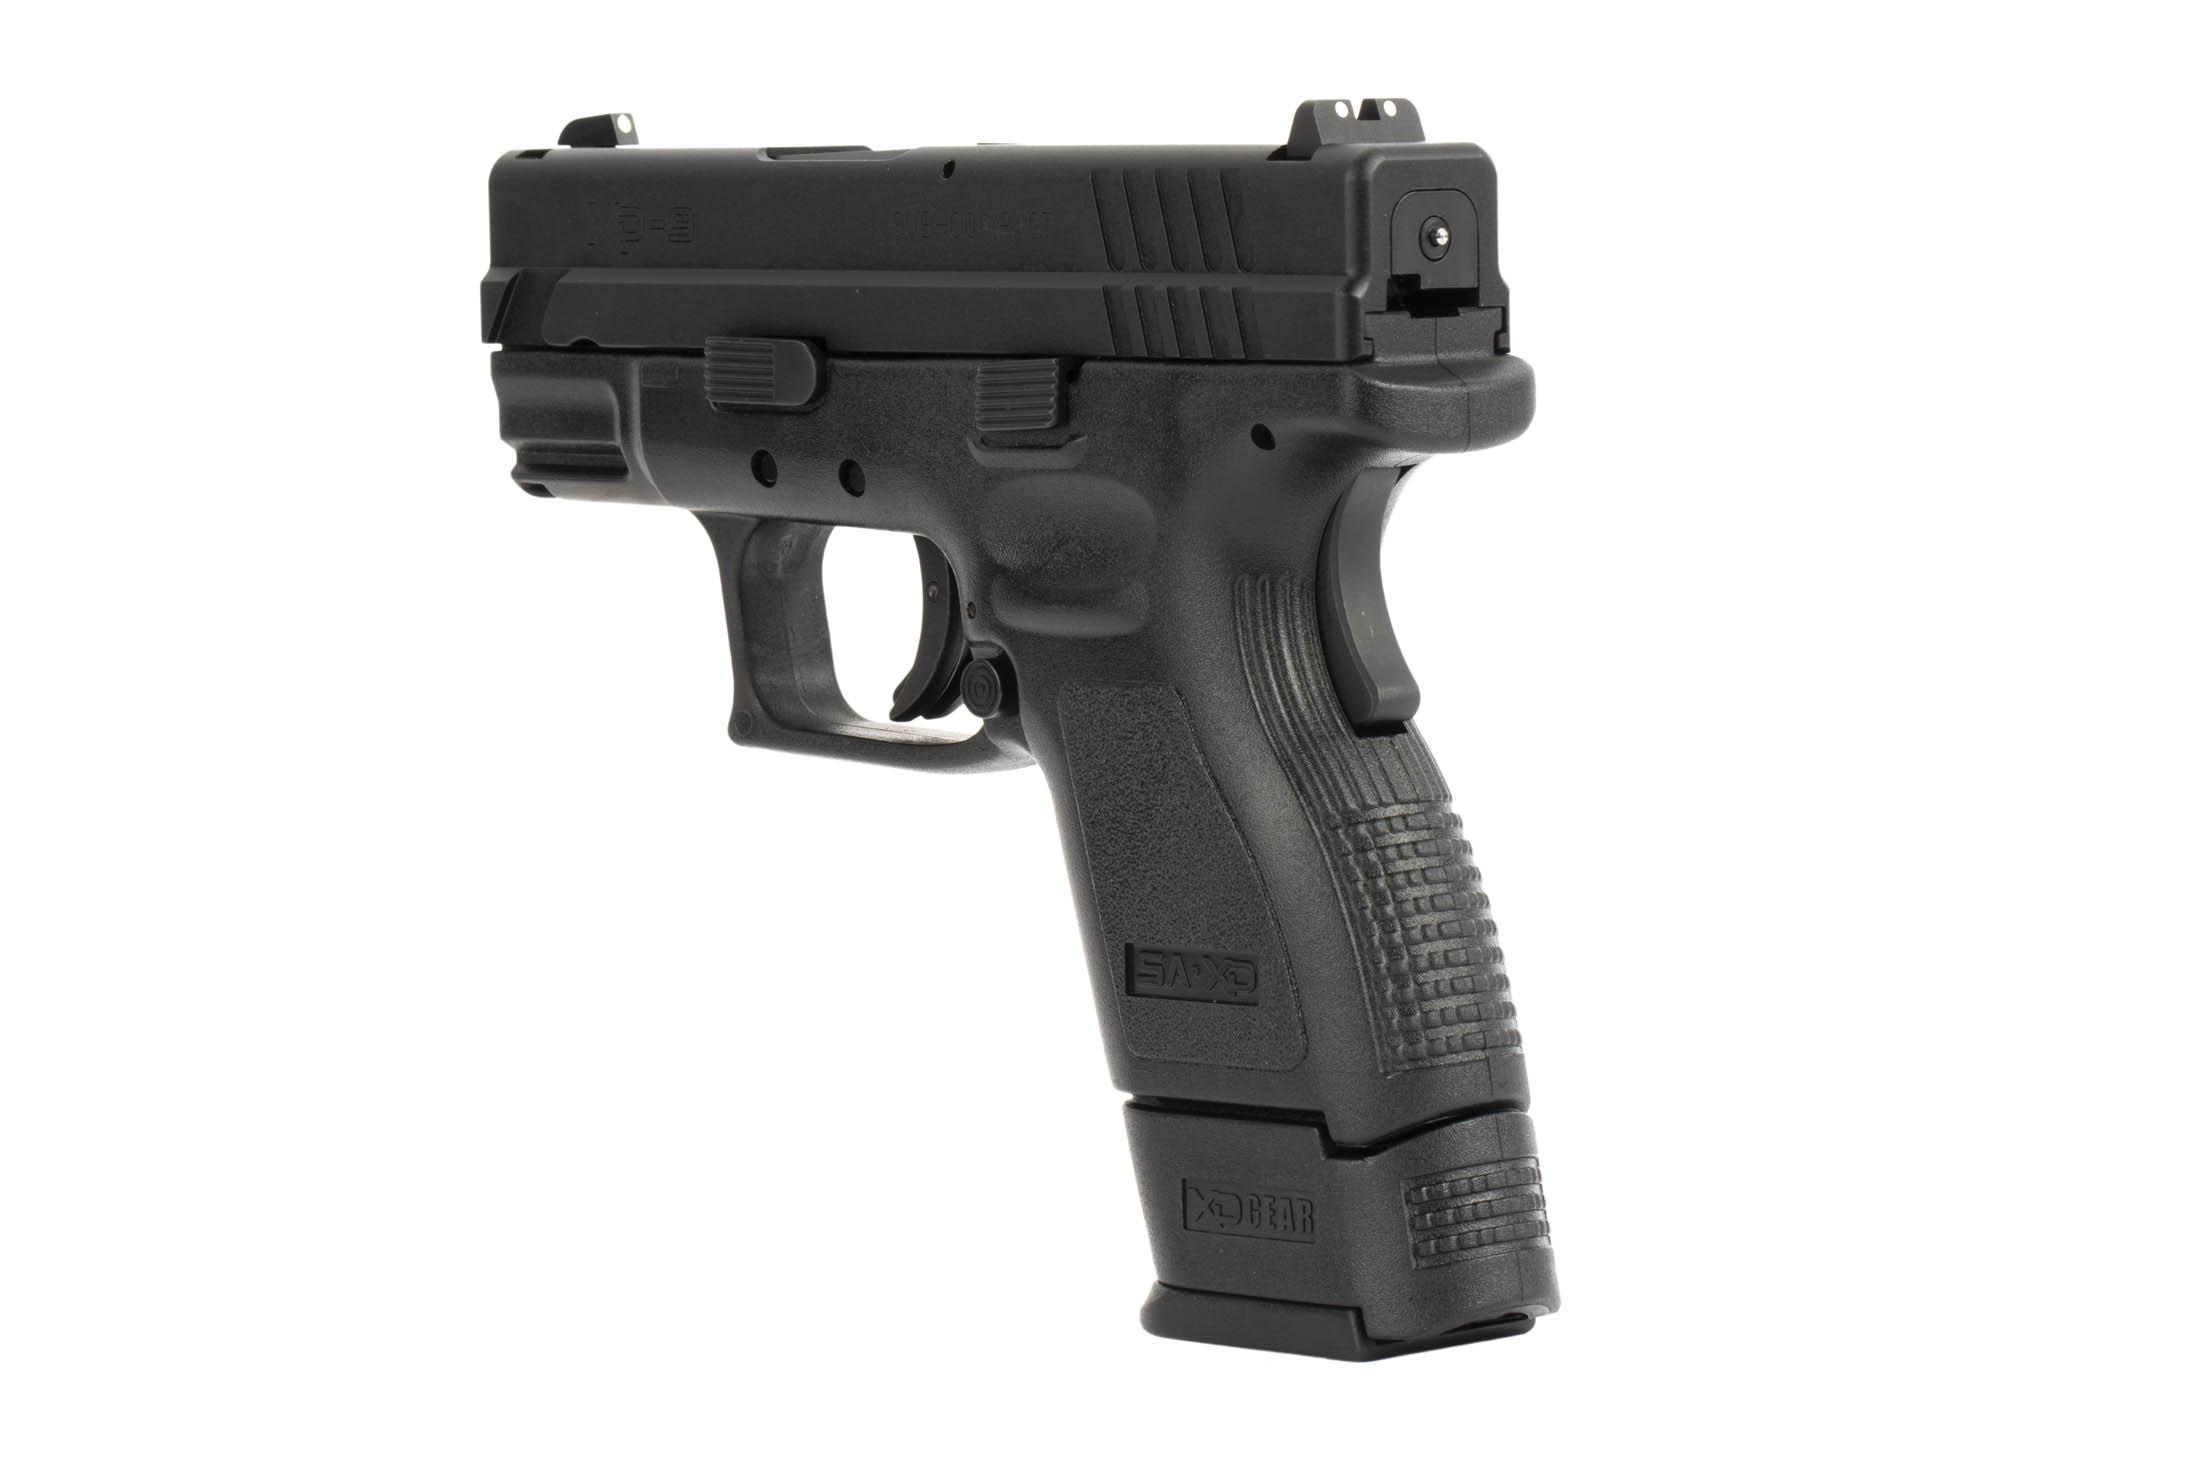 The Springfield Armory XD9 is a 9mm Sub Compact 16 round Handgun with three dot iron sights